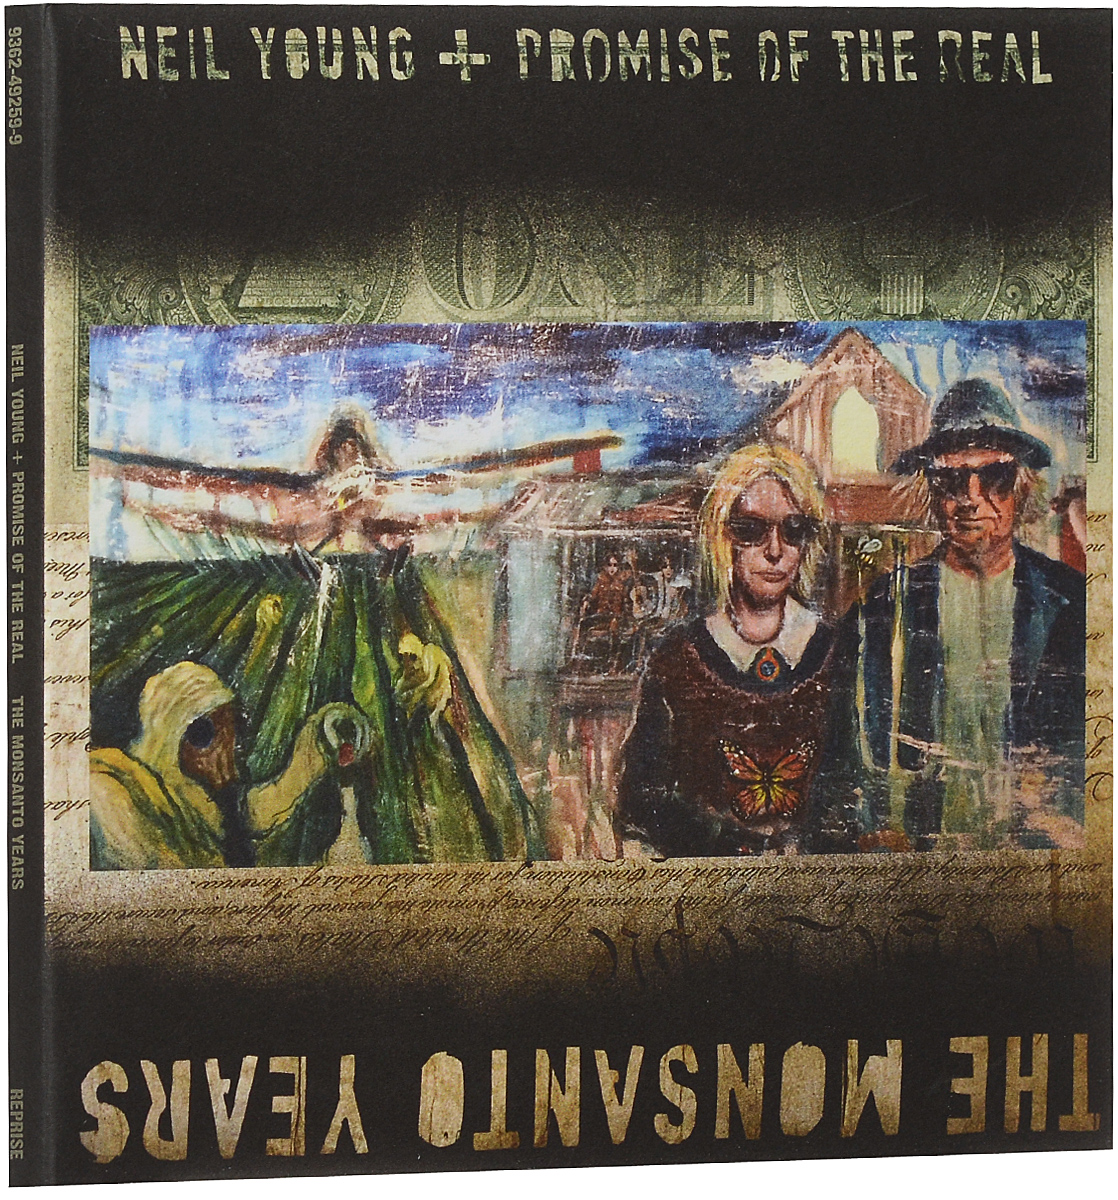 Нил Янг,Promise Of The Real Neil Young + Promise Of The Real. The Monsanto Years (CD + DVD) нил янг neil young dead man